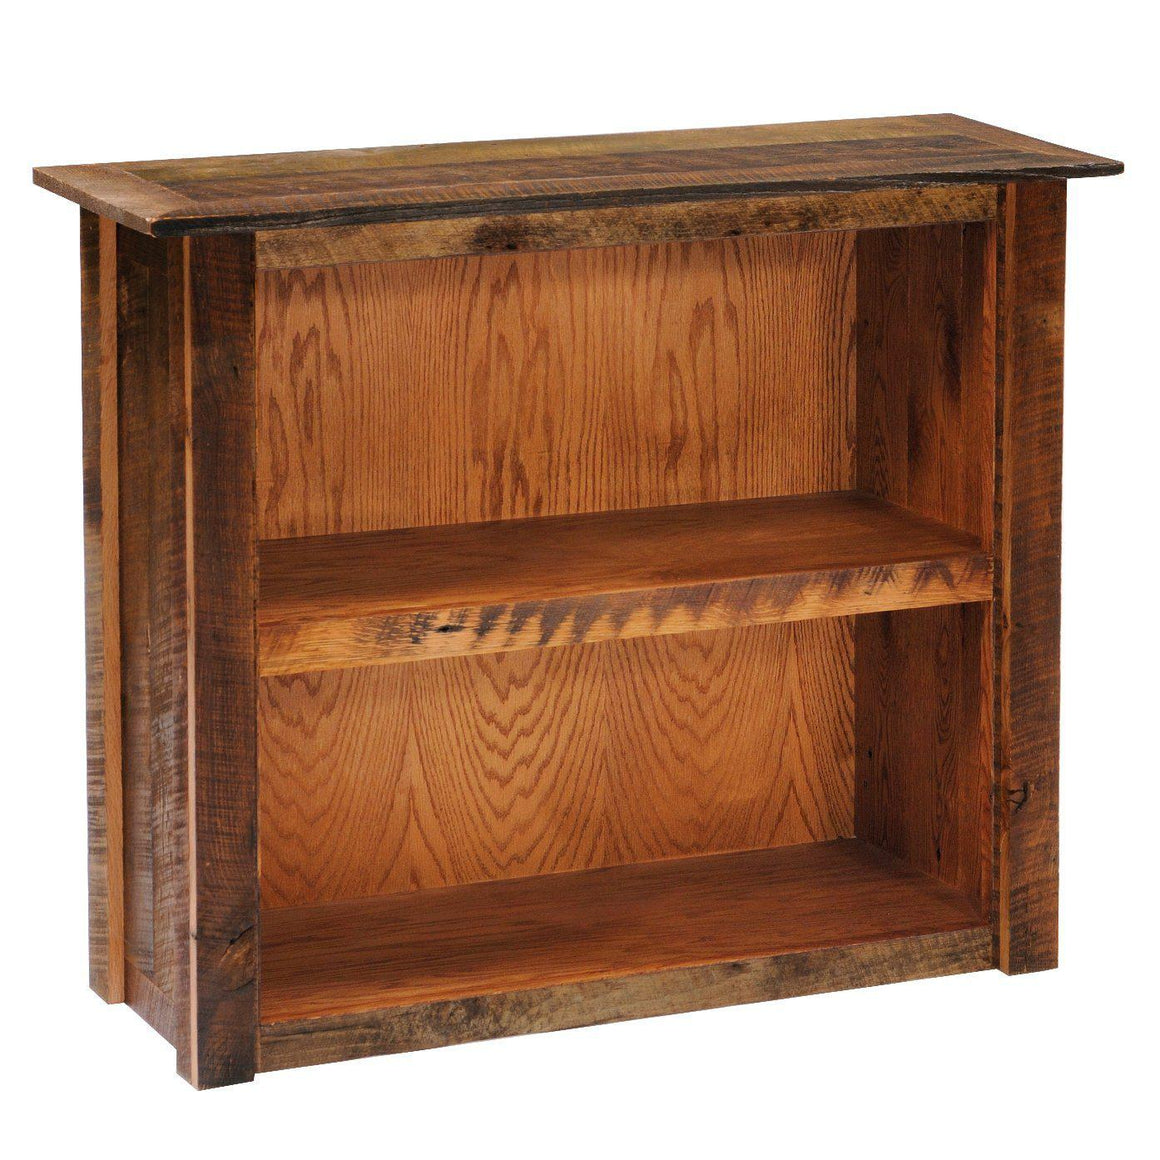 Barnwood Bookshelf - Small, Medium, Large - Rustic Deco Incorporated